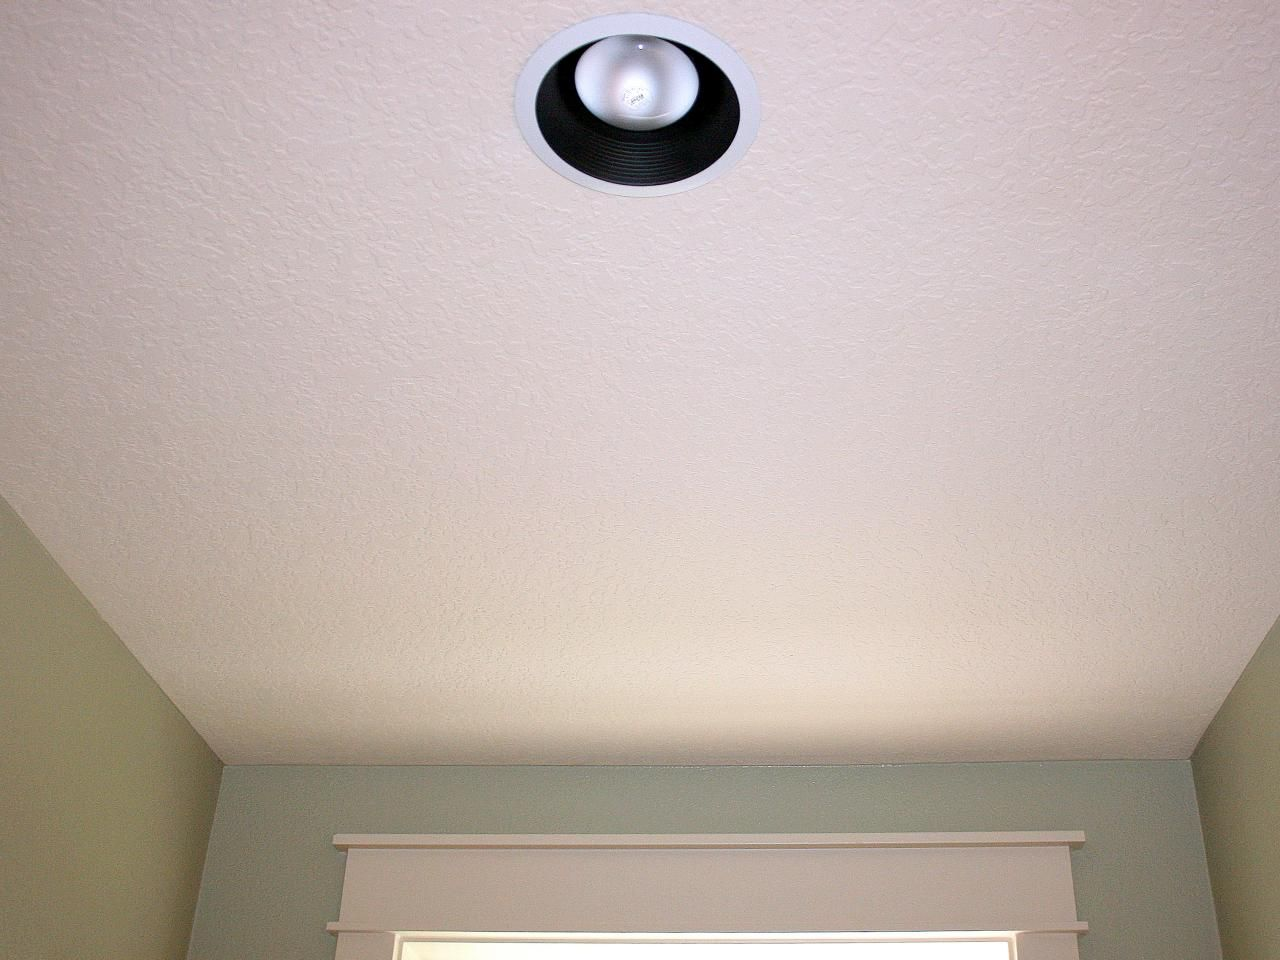 Replace Recessed Light With A Pendant Fixture Led Recessed Light